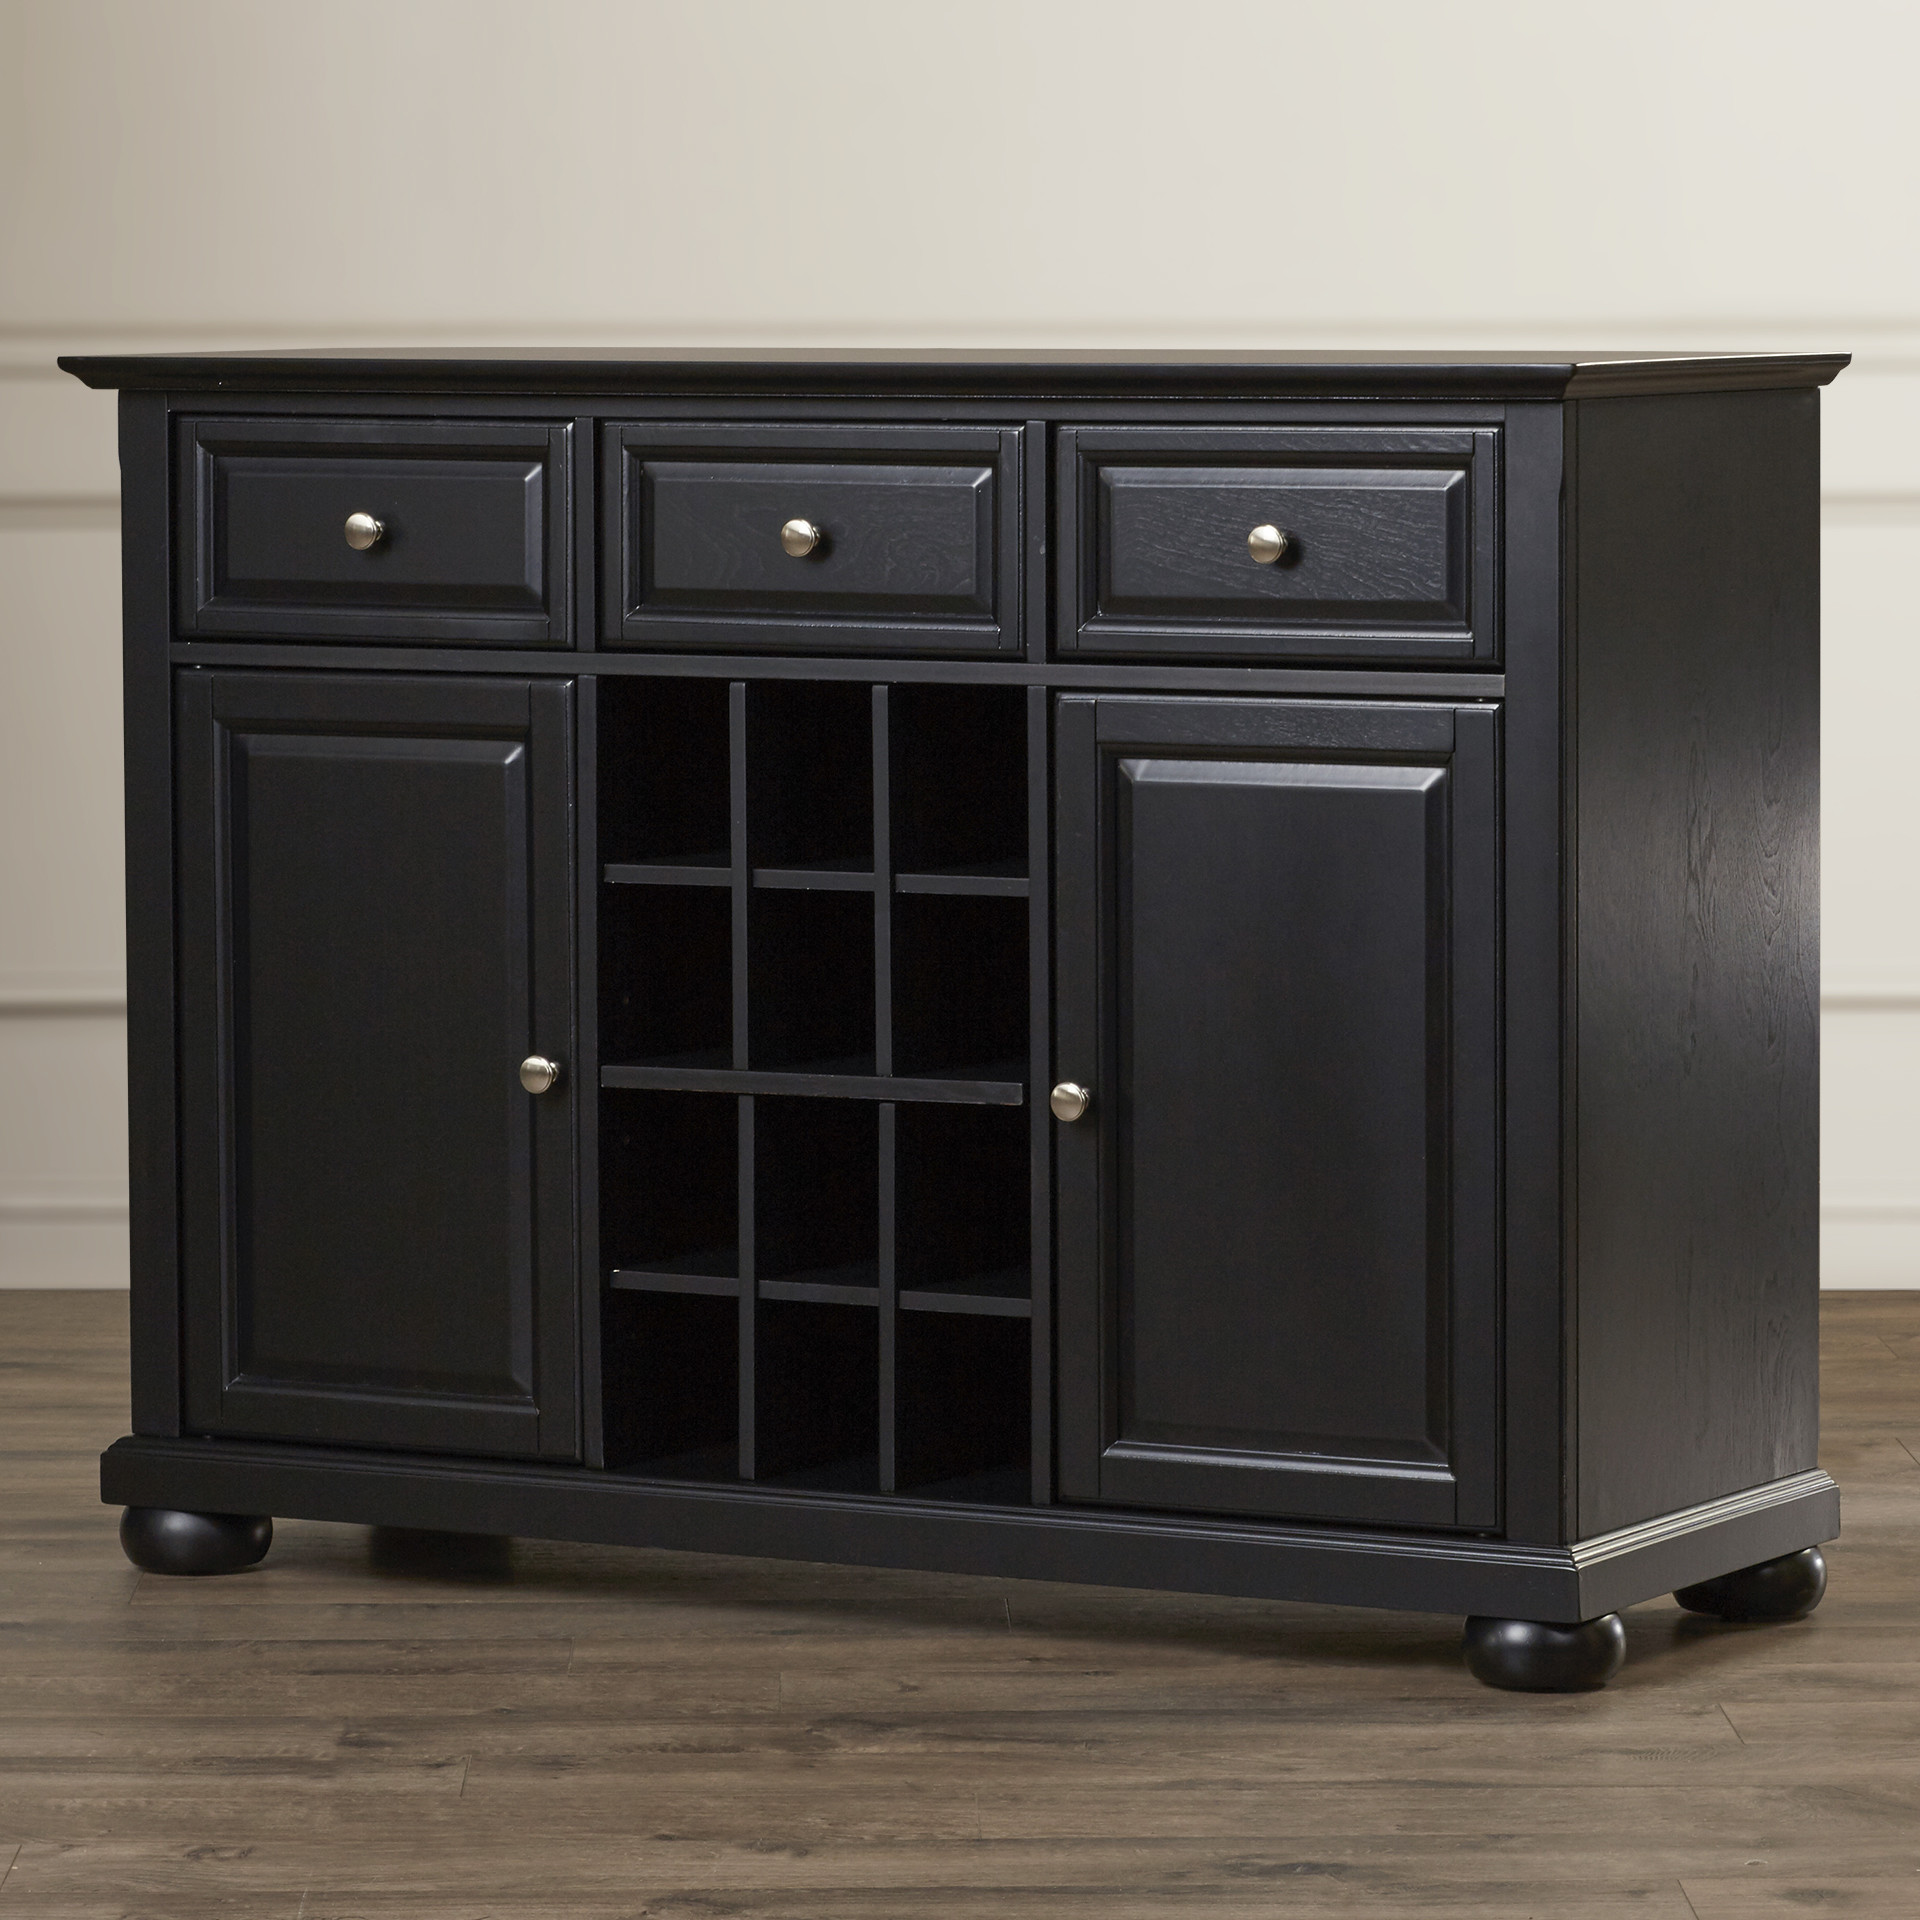 Incredible sideboards and buffets for home furniture with antique sideboards and buffets